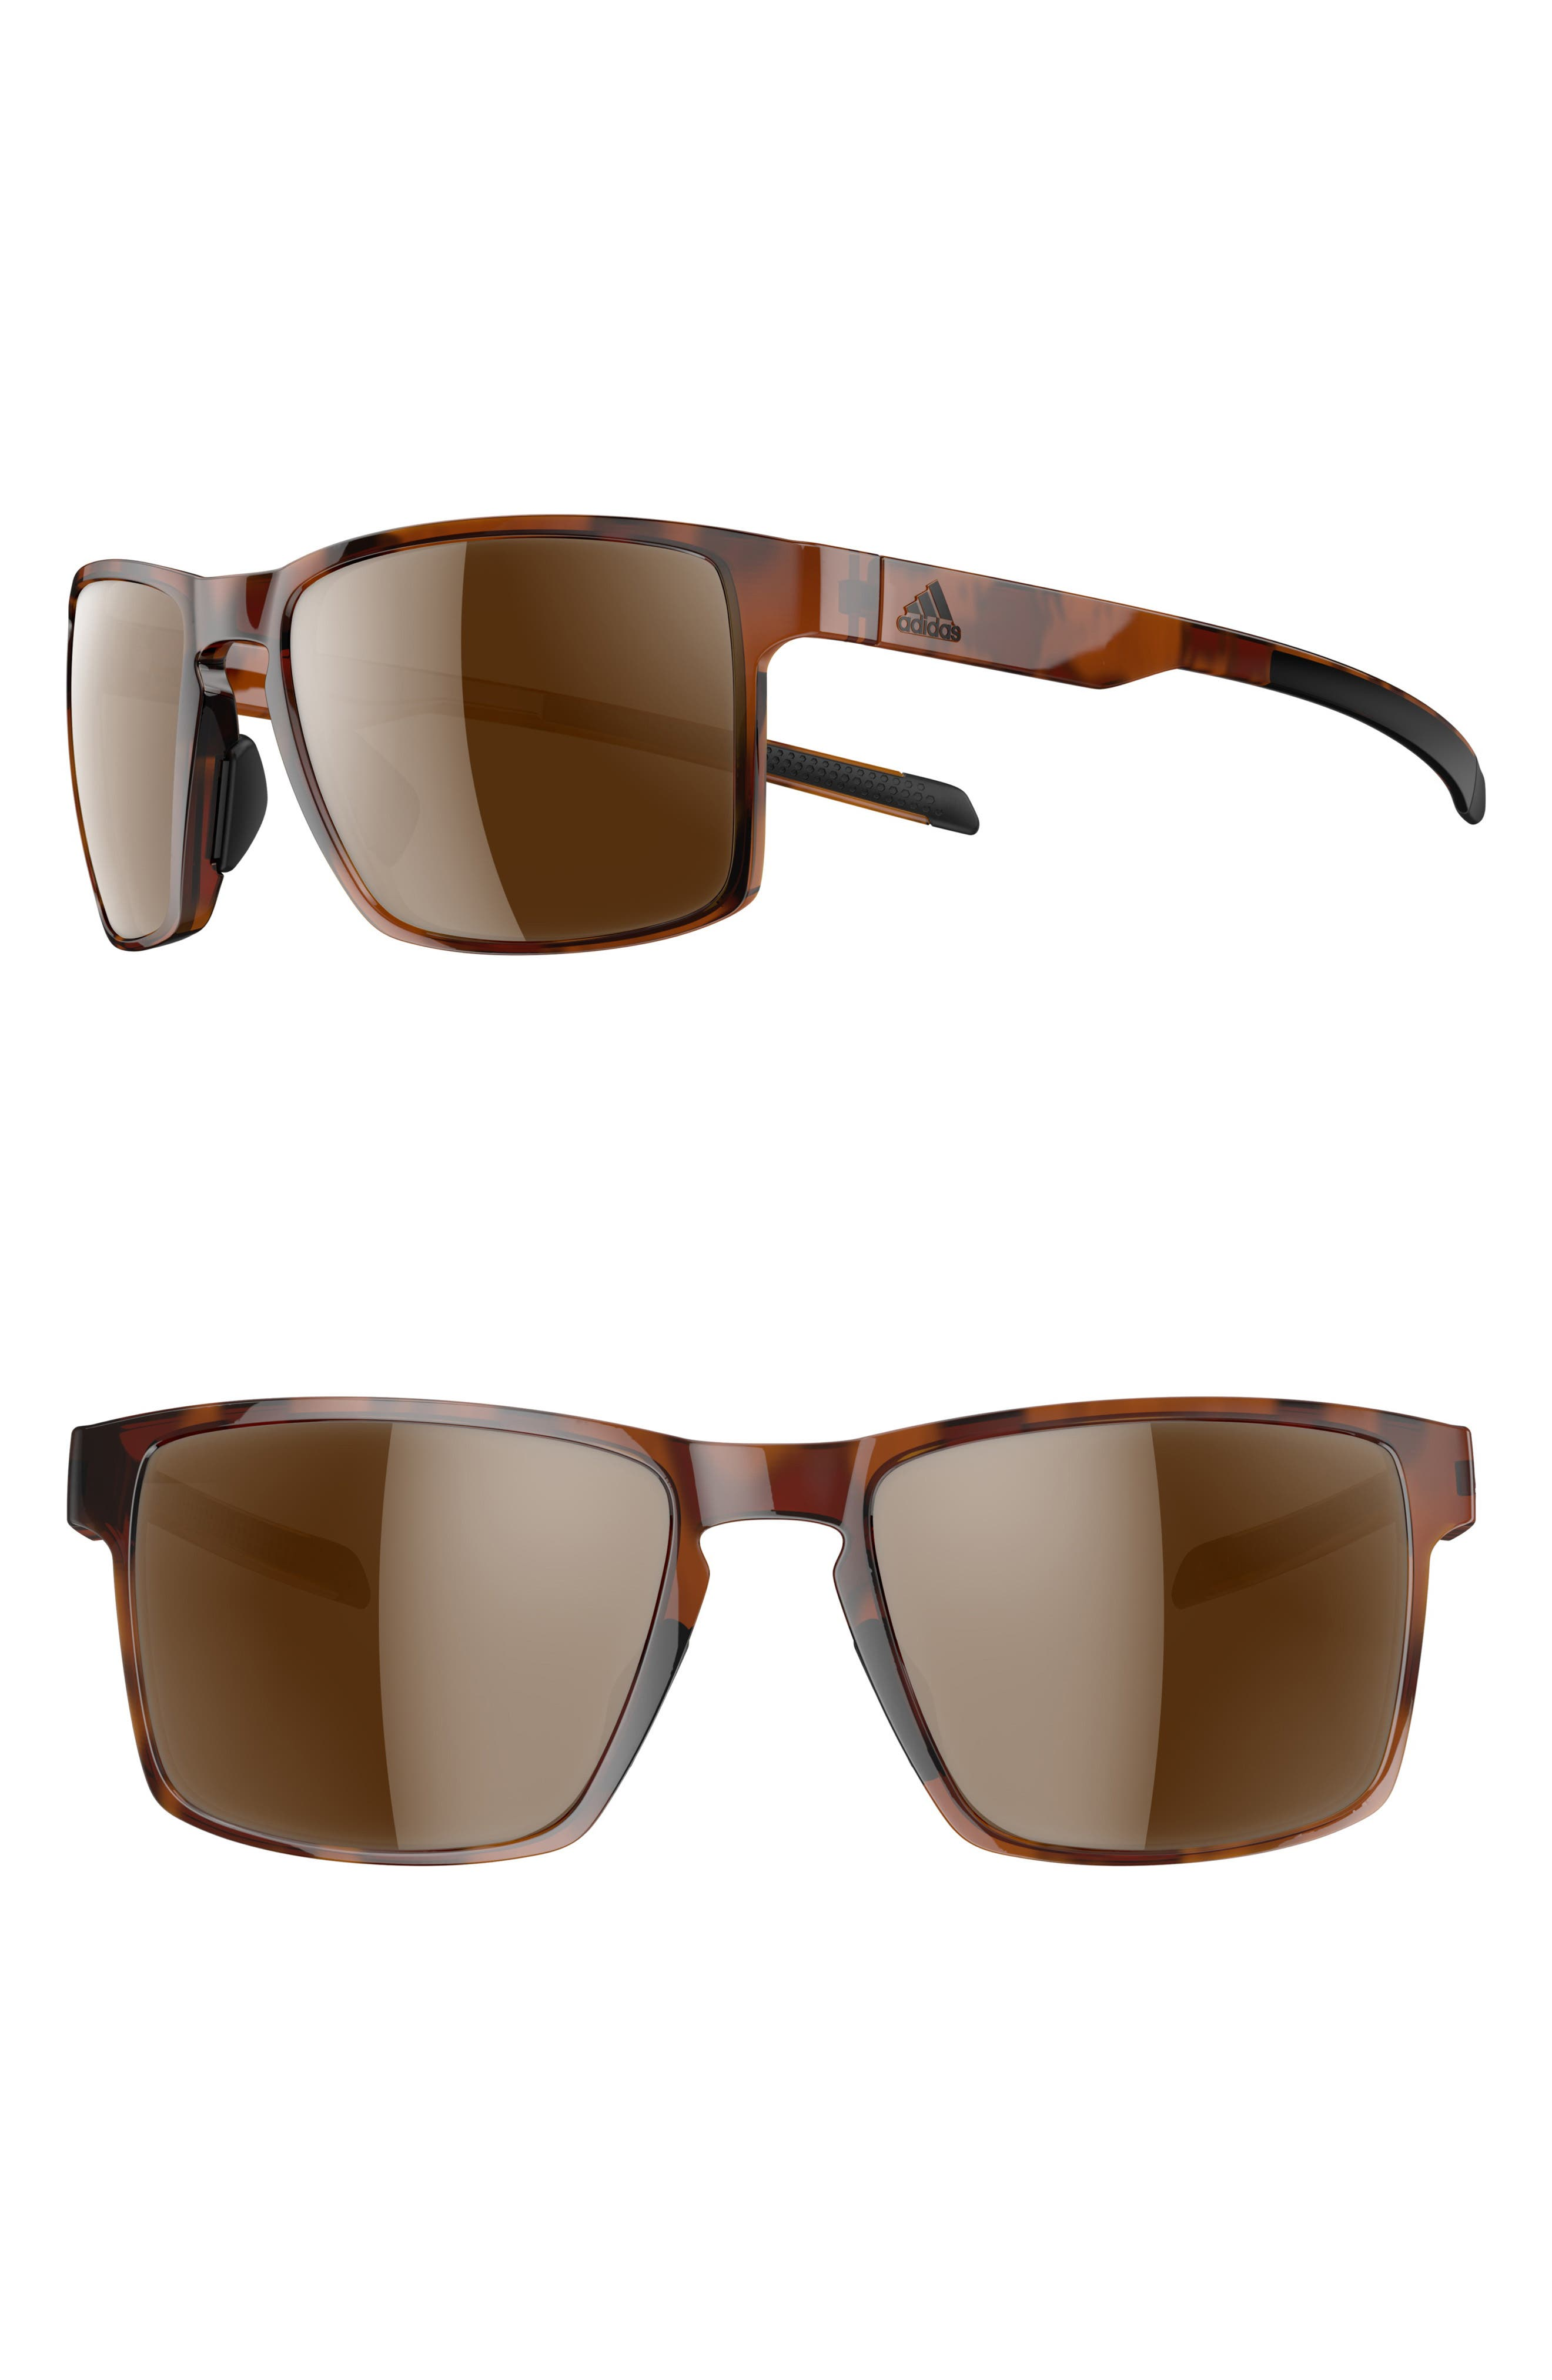 Wayfinder 56mm Sport Sunglasses,                             Main thumbnail 1, color,                             BROWN HAVANA/ BROWN